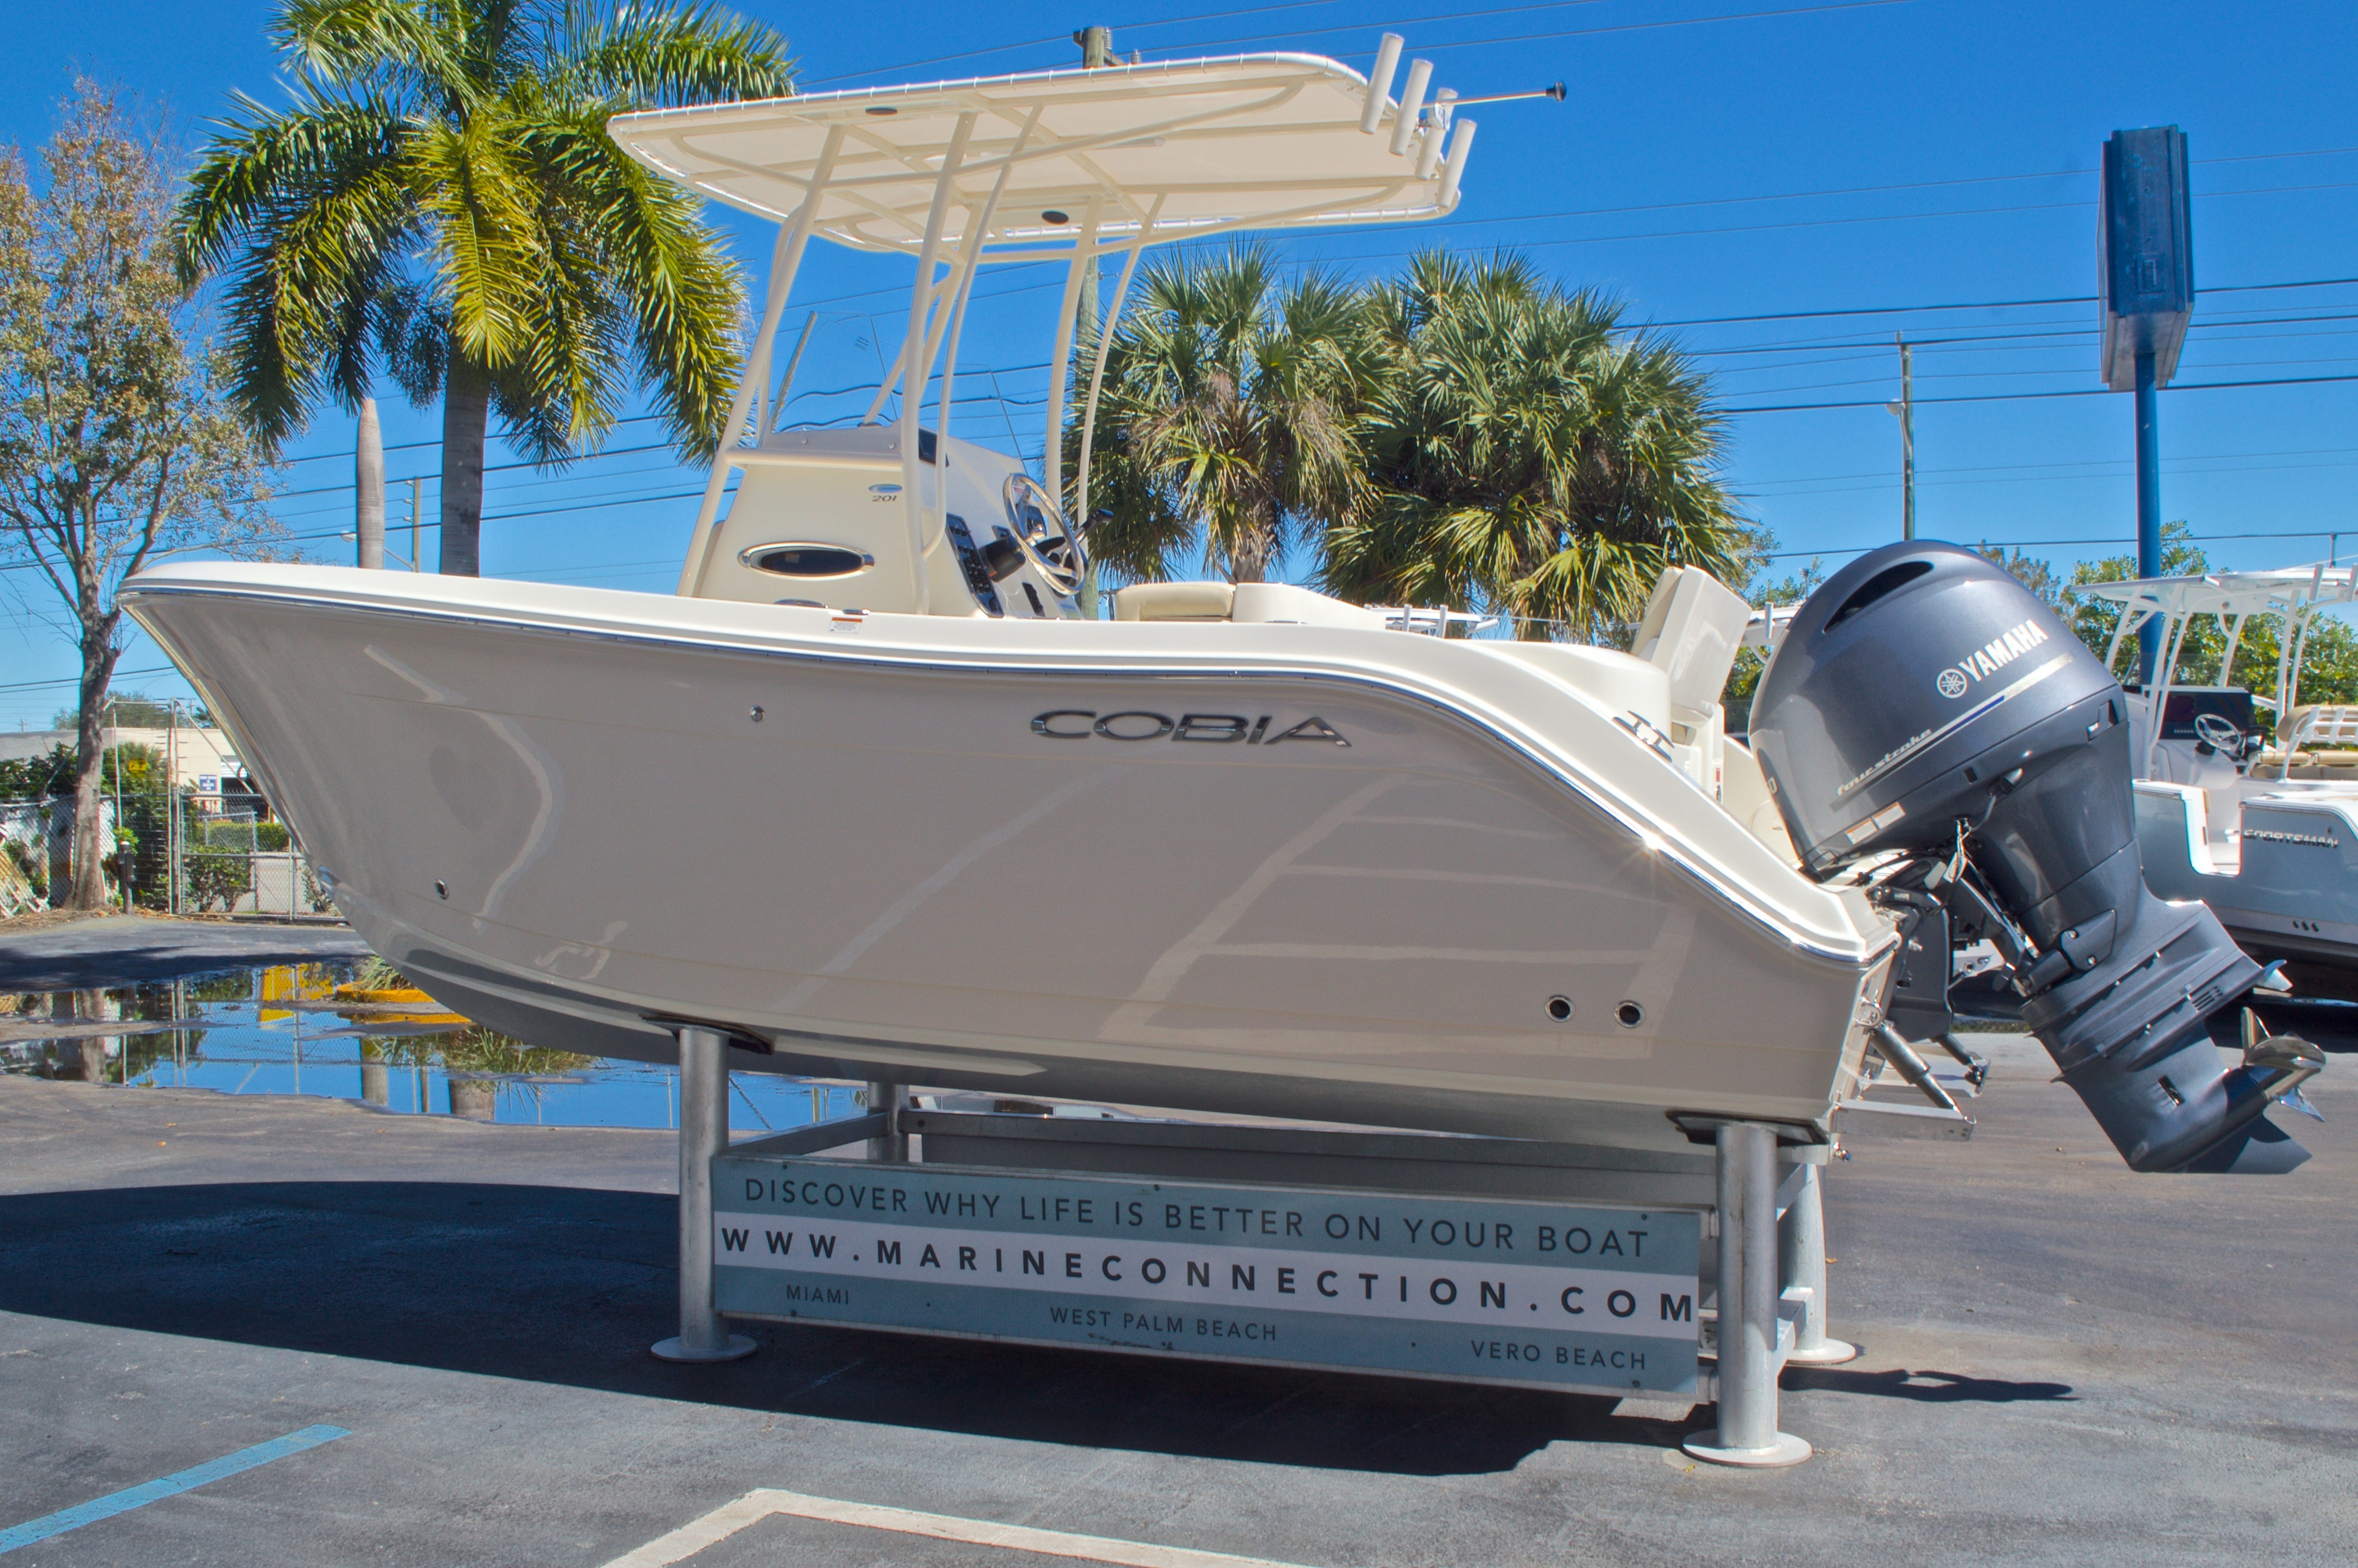 Thumbnail 6 for New 2016 Cobia 201 Center Console boat for sale in Vero Beach, FL